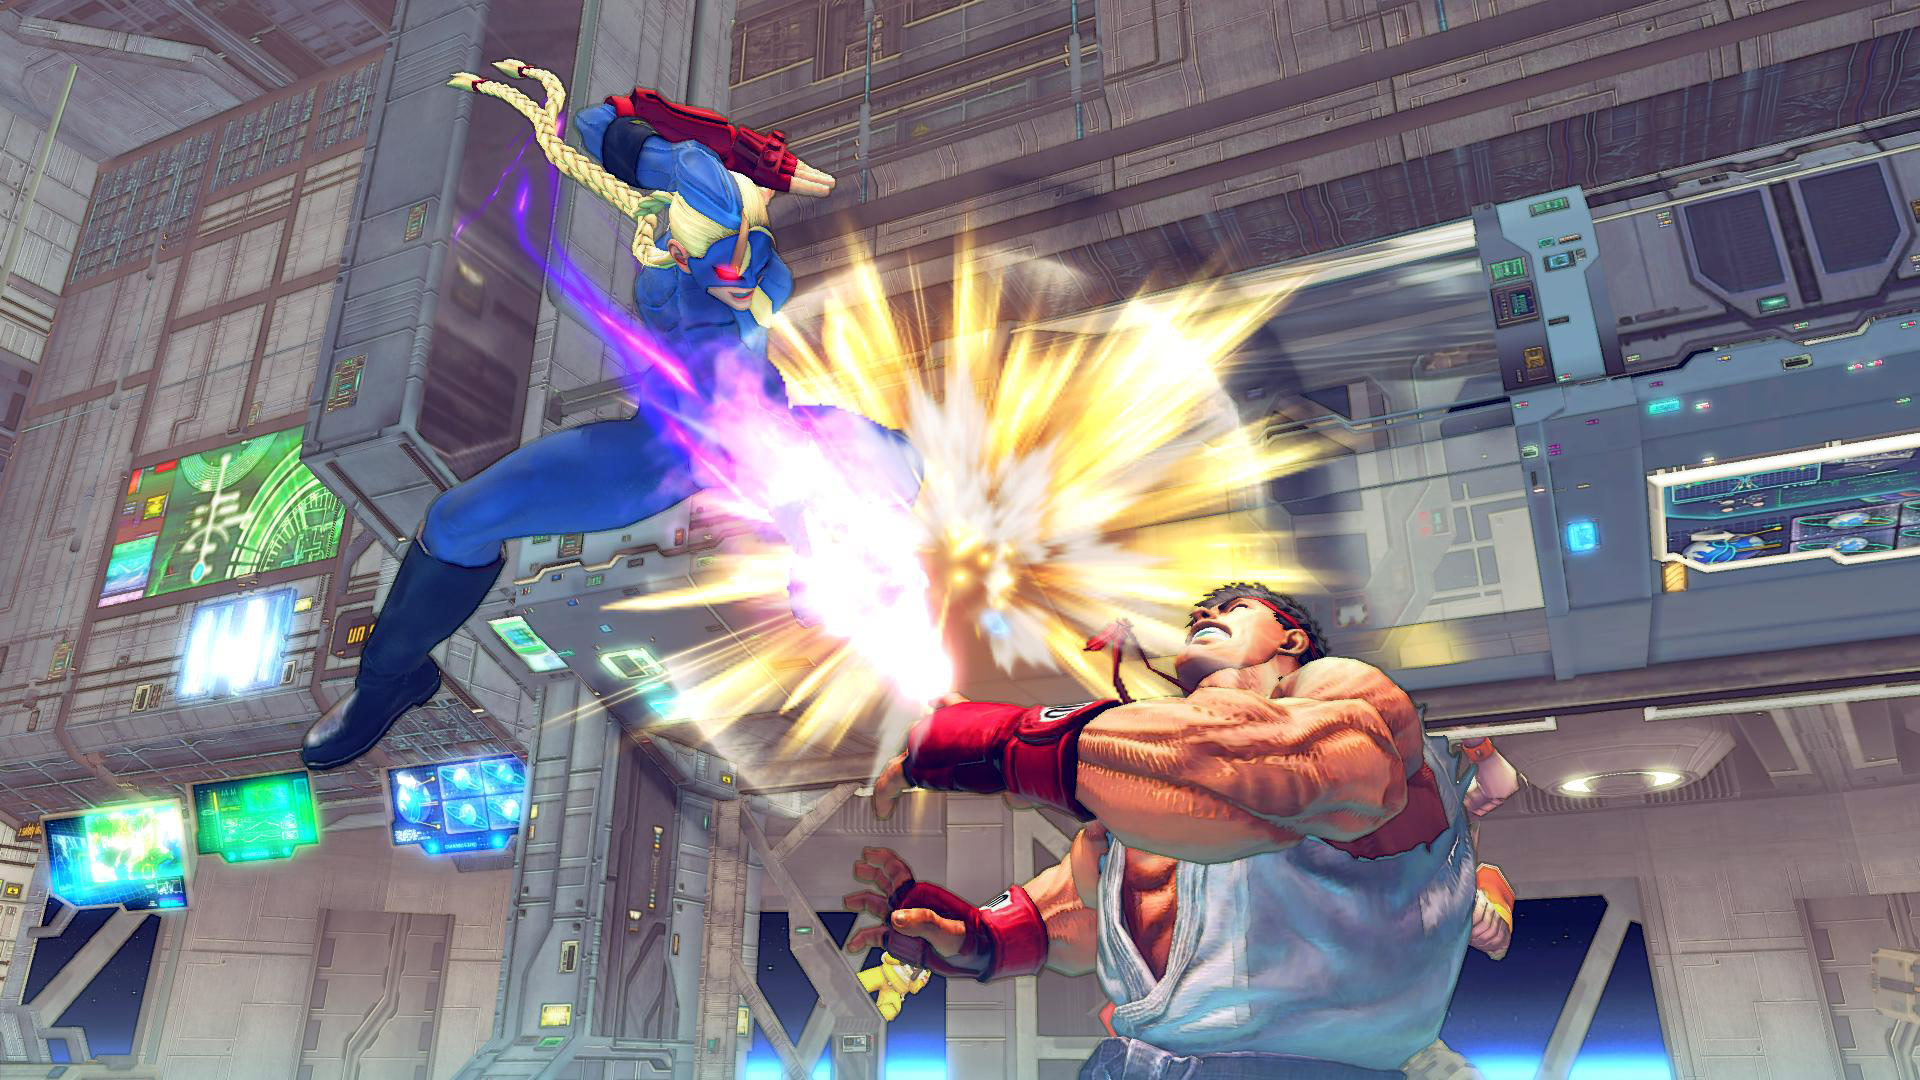 Decapre artwork and screen shots for Ultra Street Fighter 4 image #7